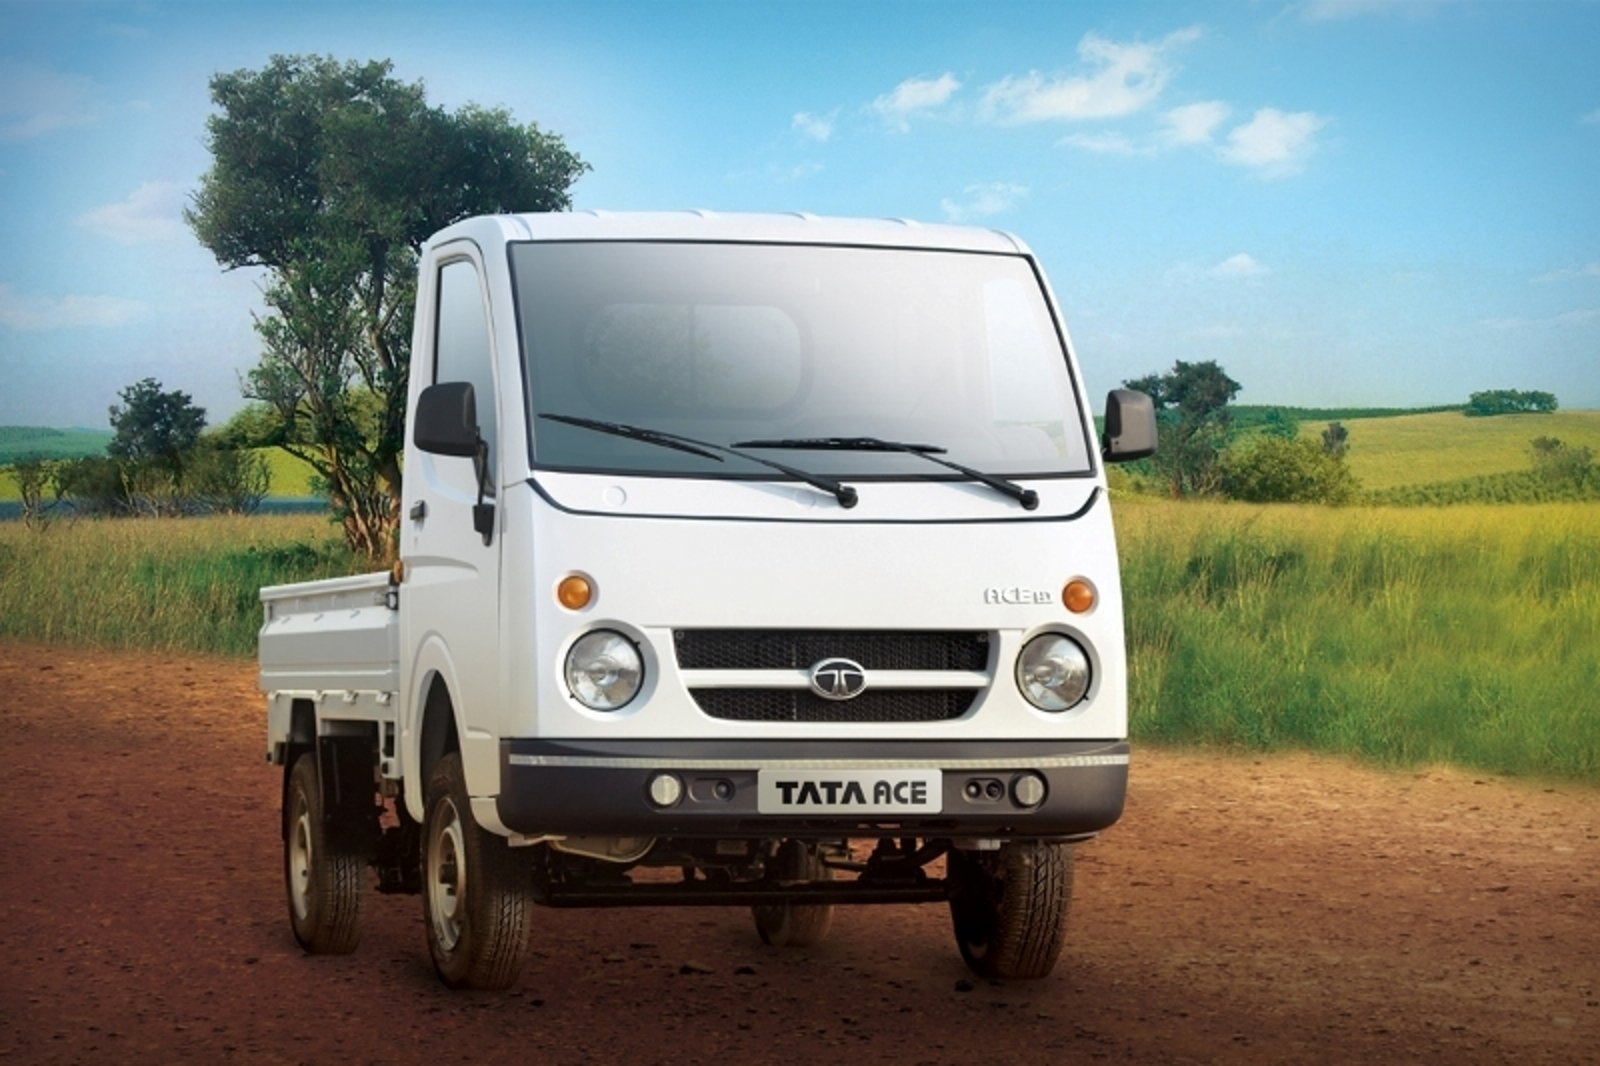 2005 Tata Ace Review - Top Speed